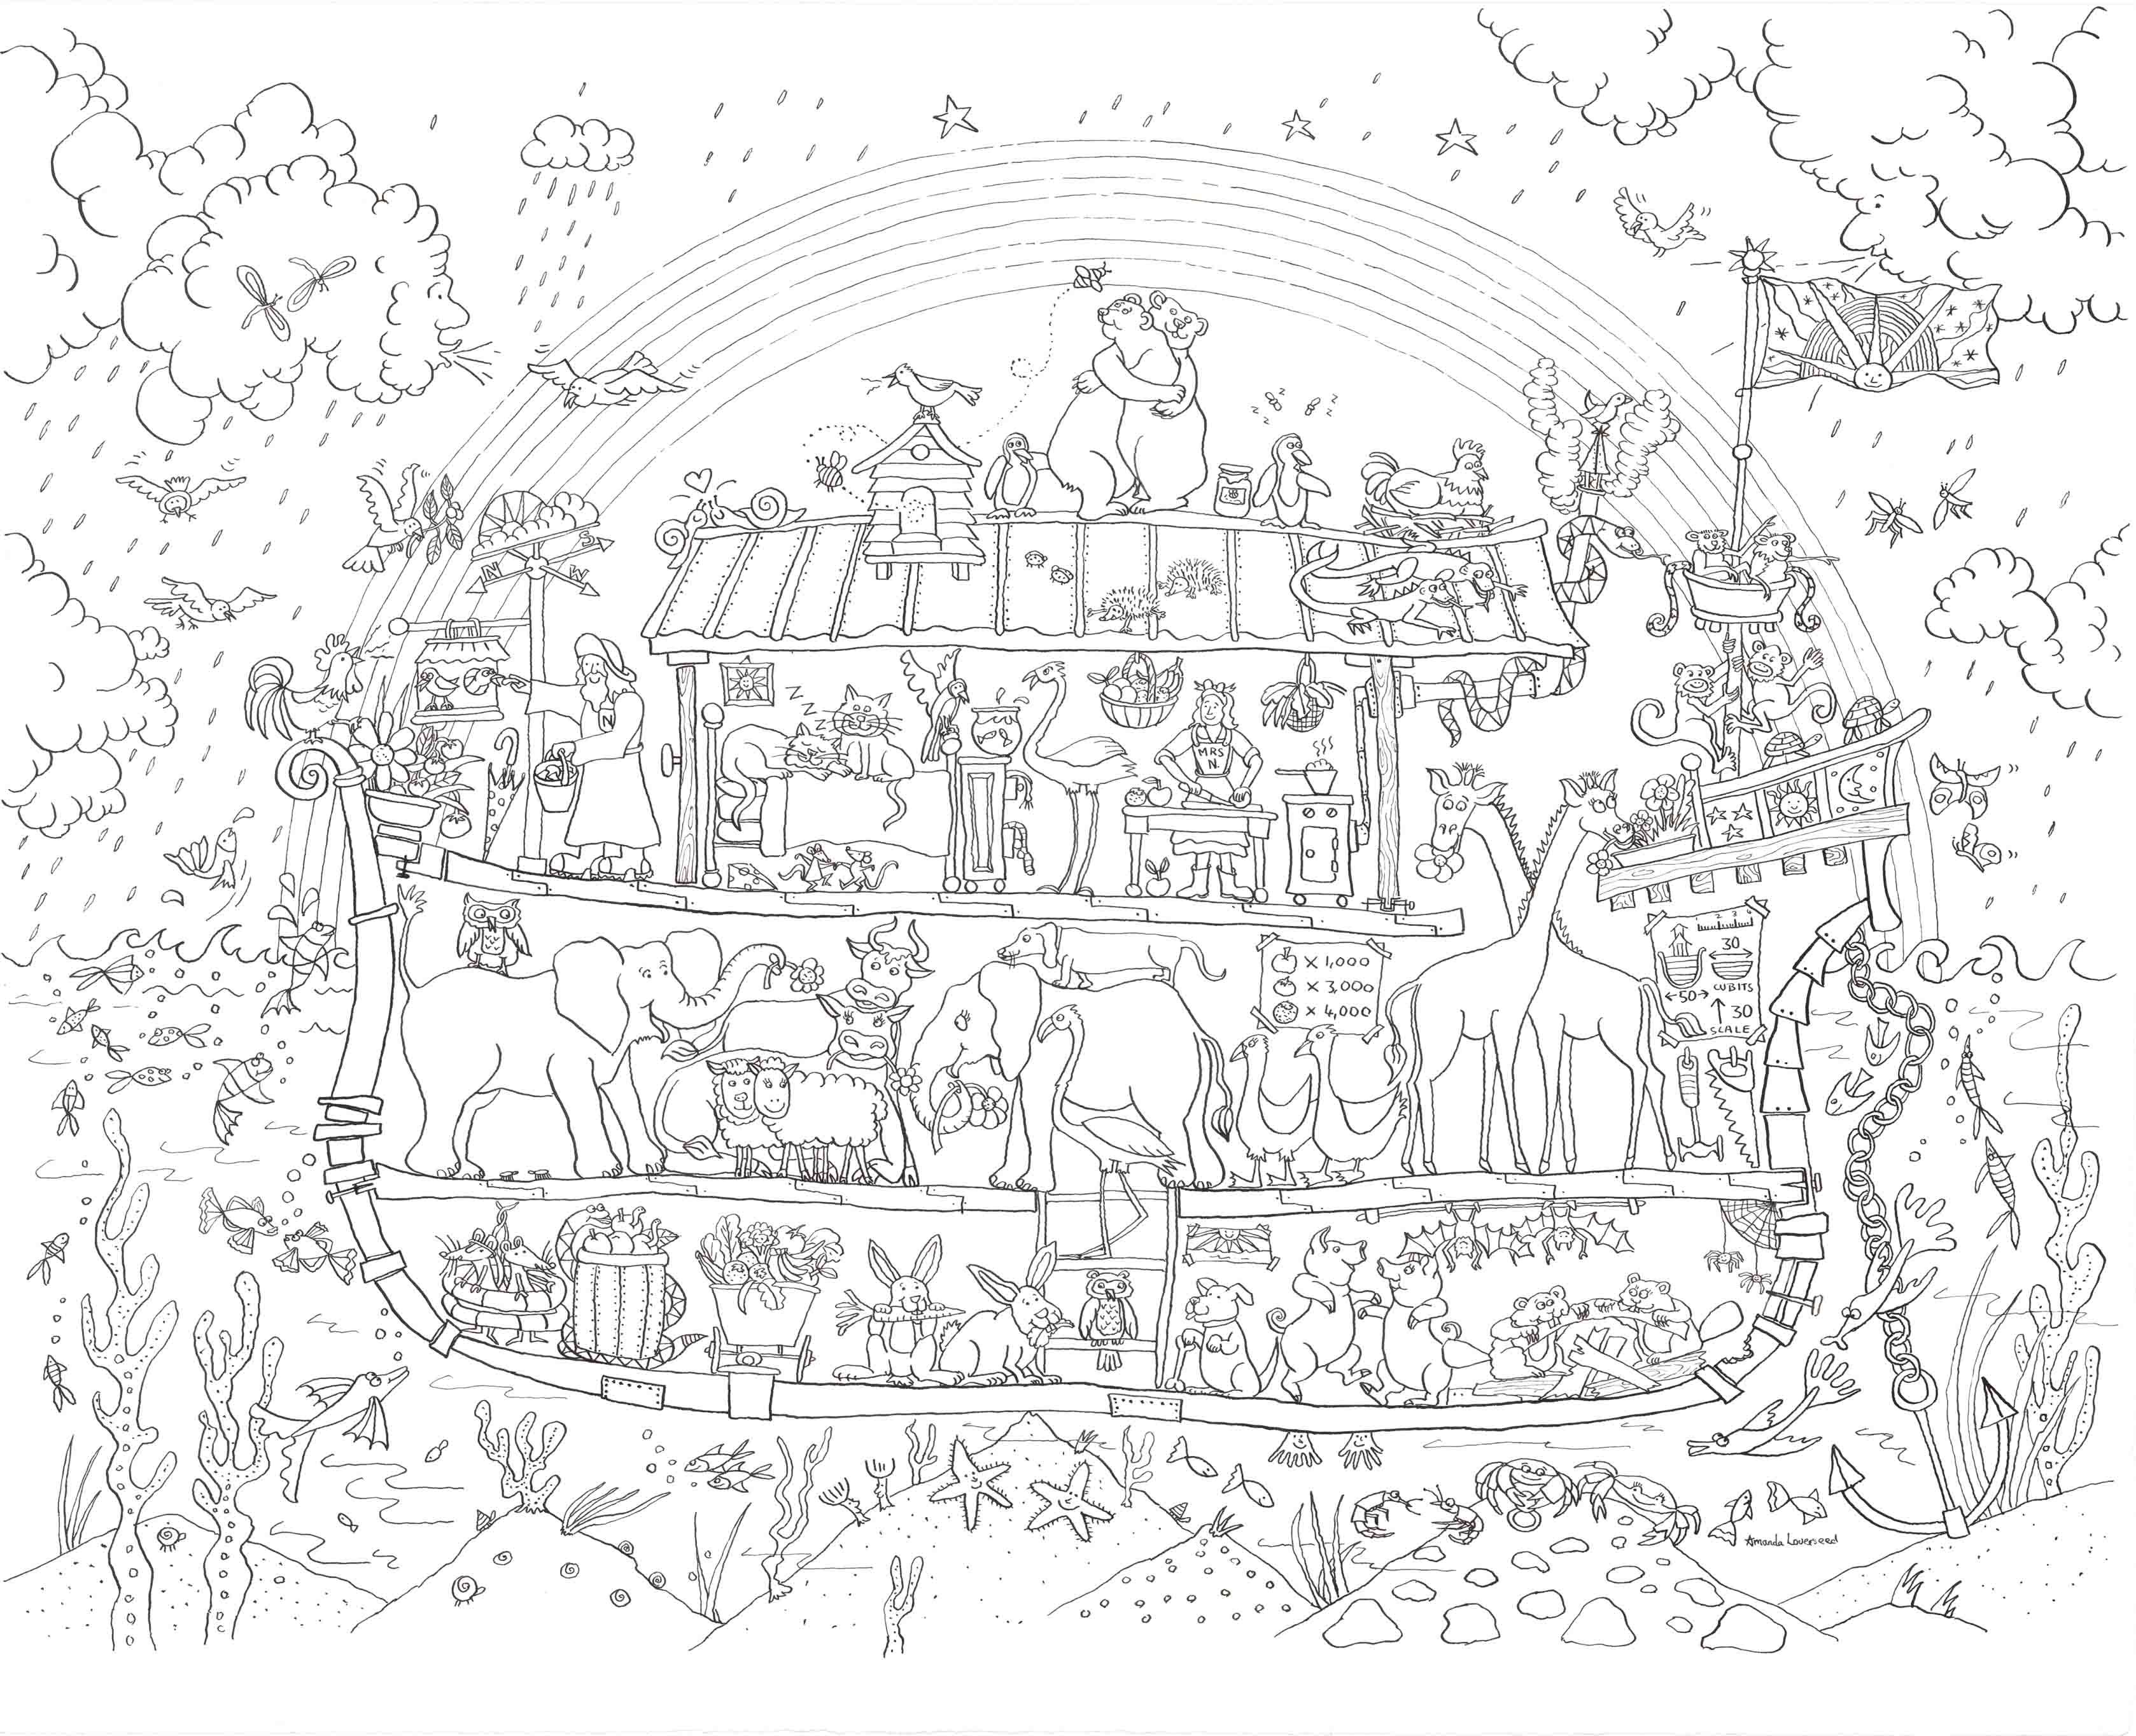 Noah S Ark Colouring In Poster Animal Coloring Pages Giant Poster Coloring Books